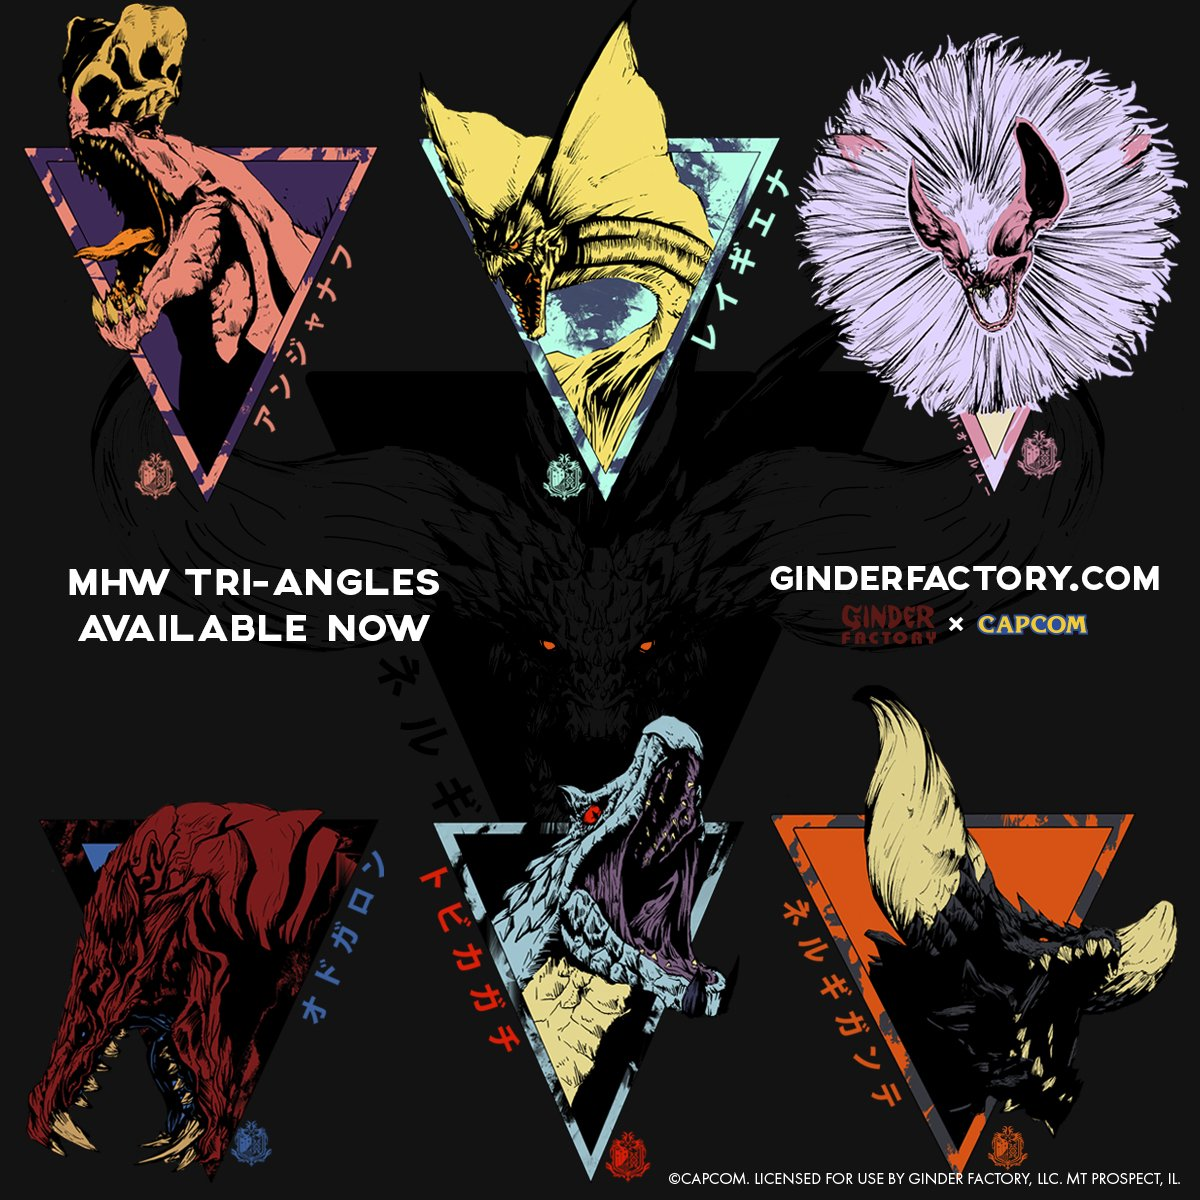 de5db1ce If you're a fan of Monster Hunter: World, then you need to check out this  new line-up of fantastic looking t-shirts from the Ginder Factory, inspired  by the ...